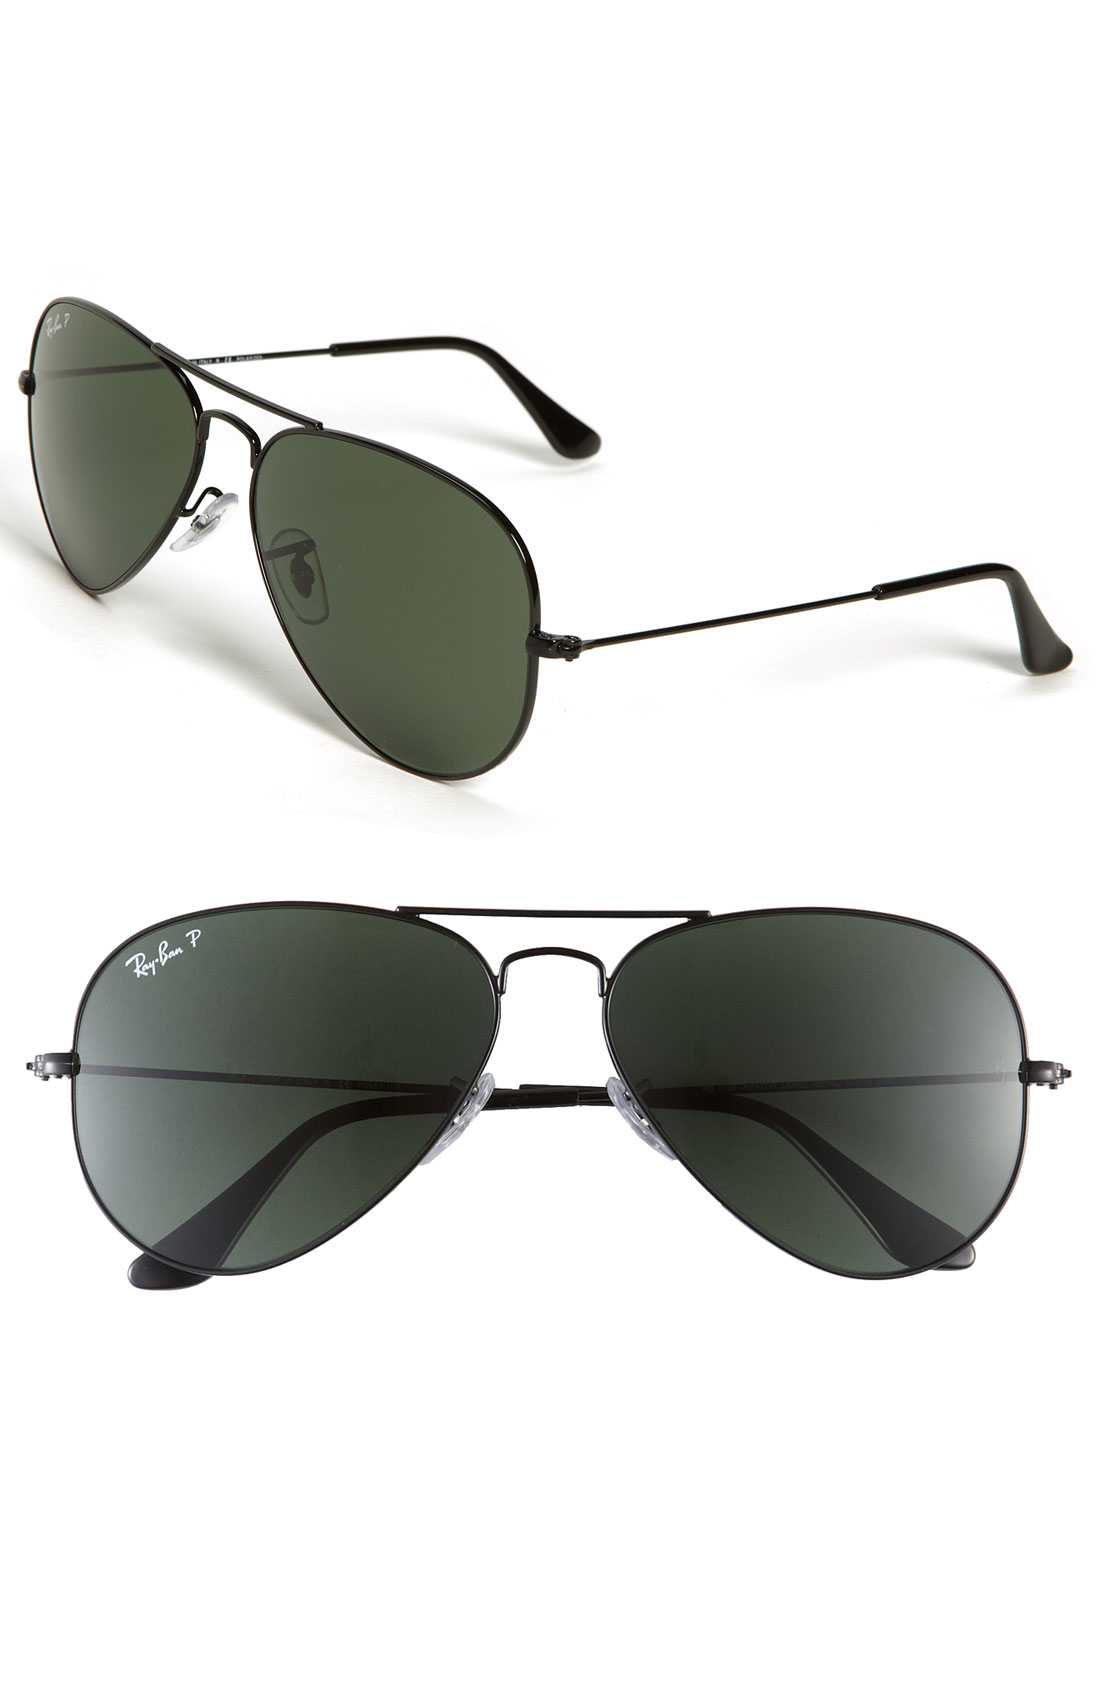 ray ban original aviator polarized sunglasses